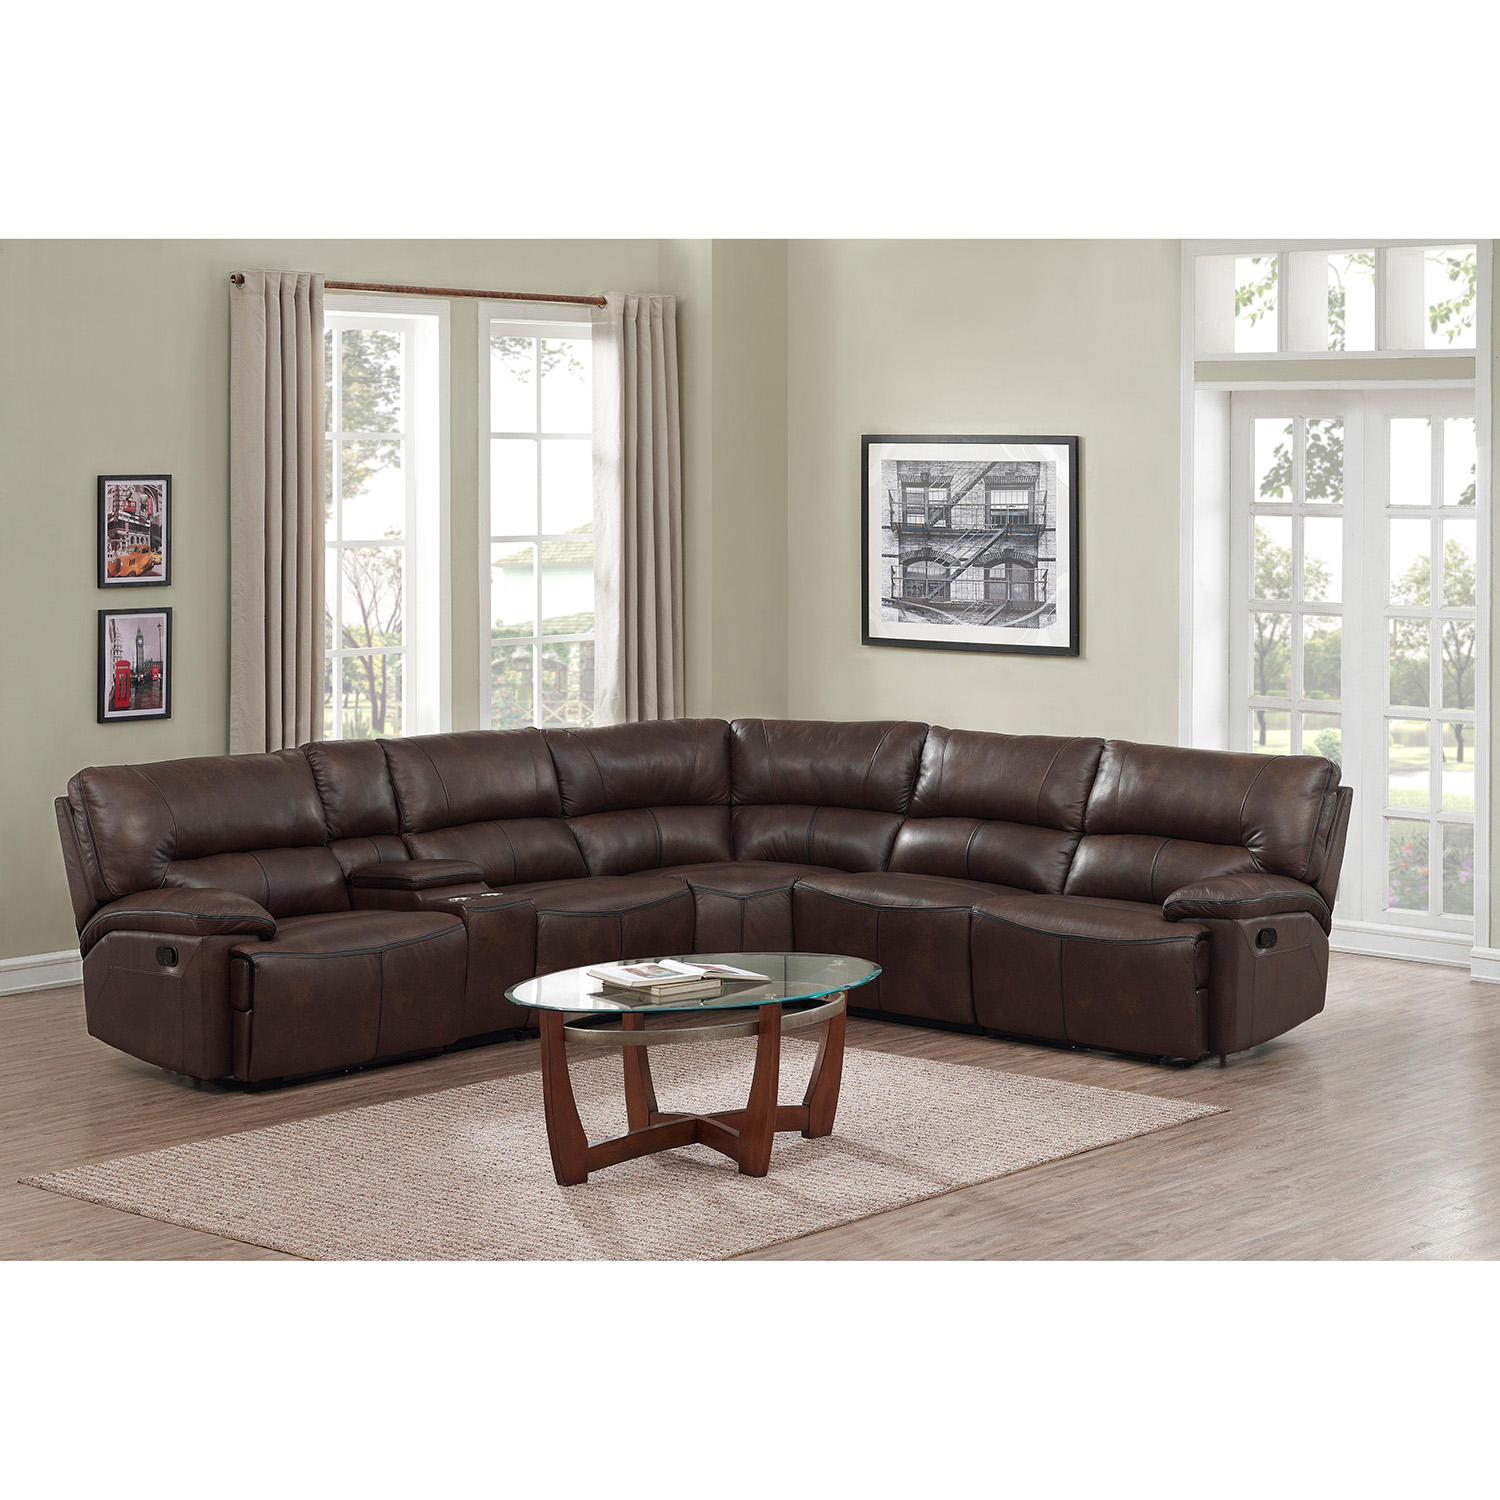 Burke 6-Piece Top-Grain Leather Reclining Sectional Sofa